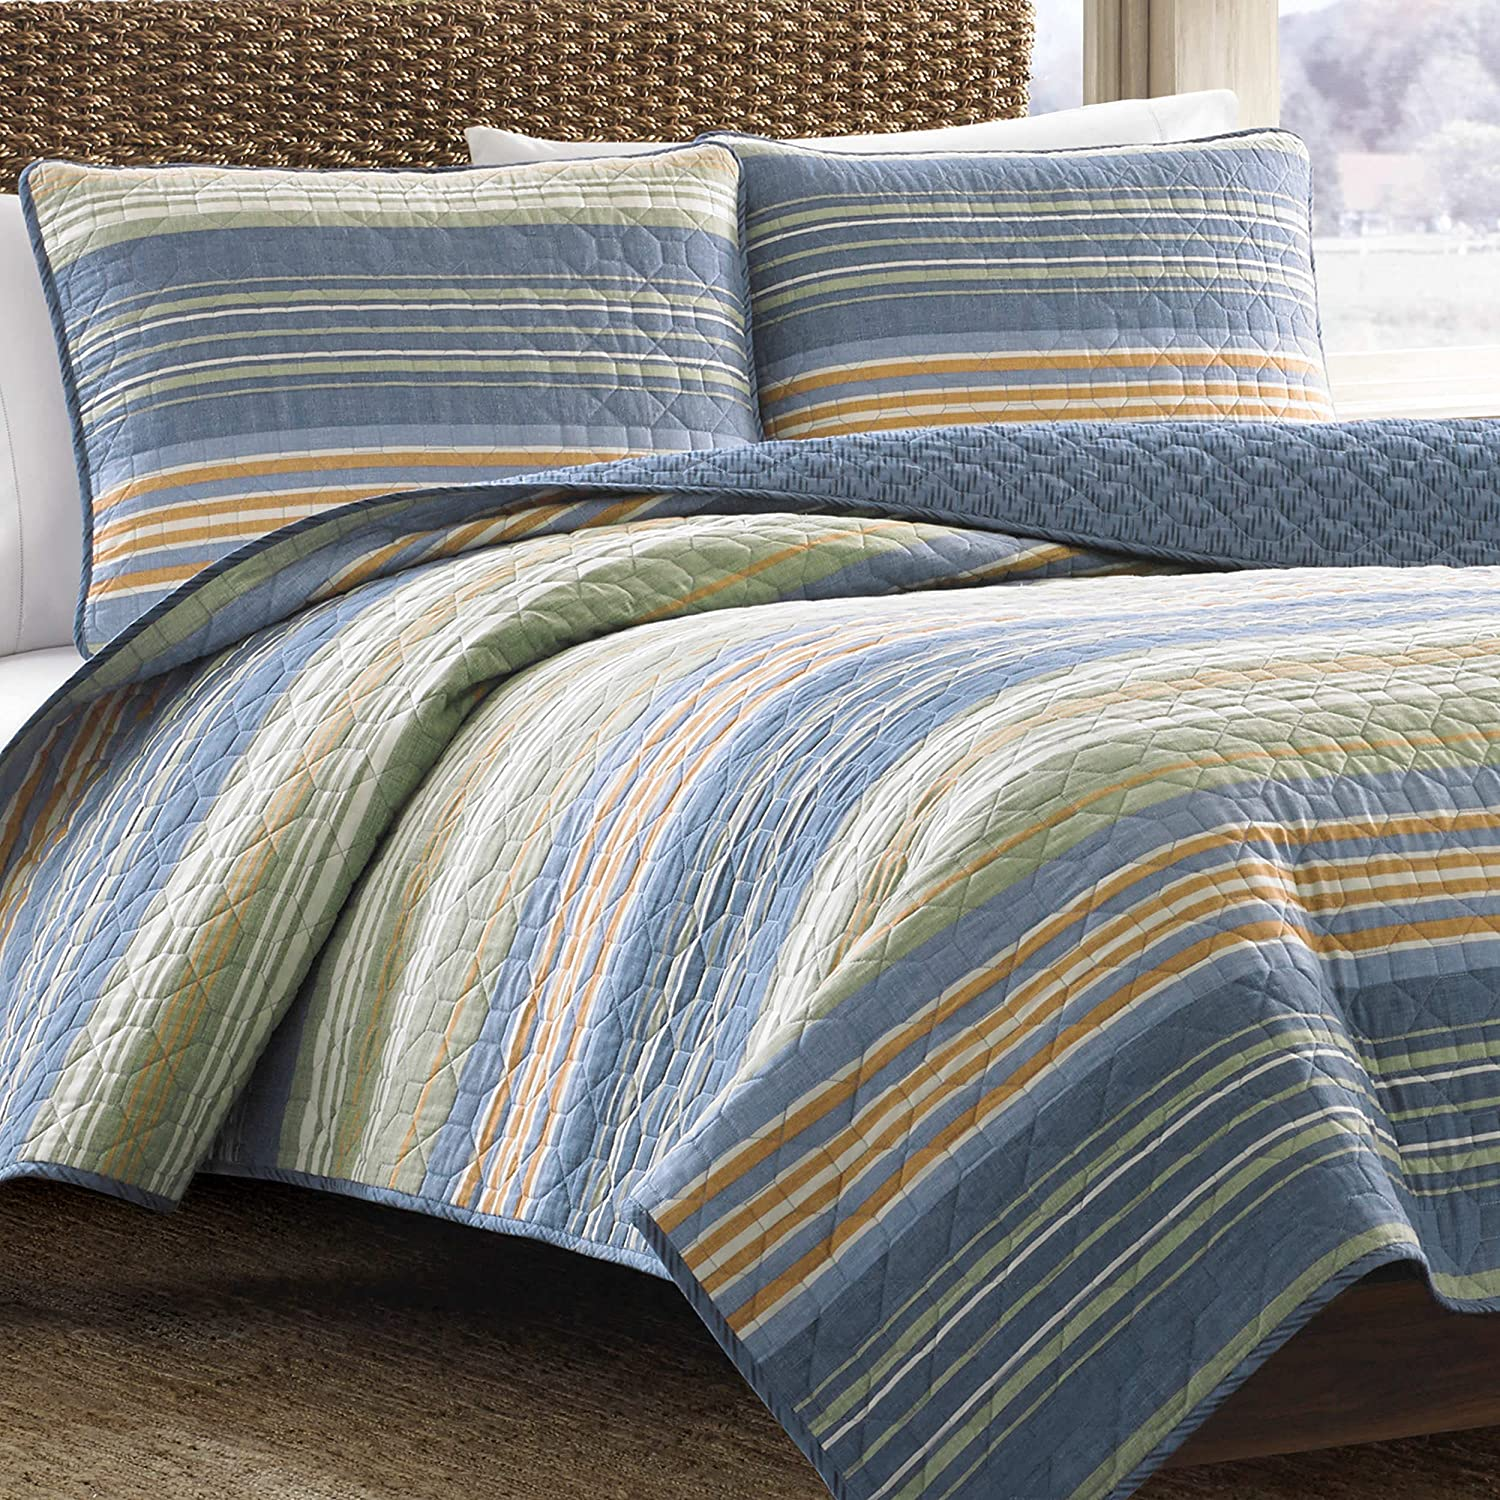 Eddie Bauer Home   Yakima Collection   Bedding Set-100% Cotton Light-Weight Quilt Bedspread, Pre-Washed for Extra Comfort, King, Green